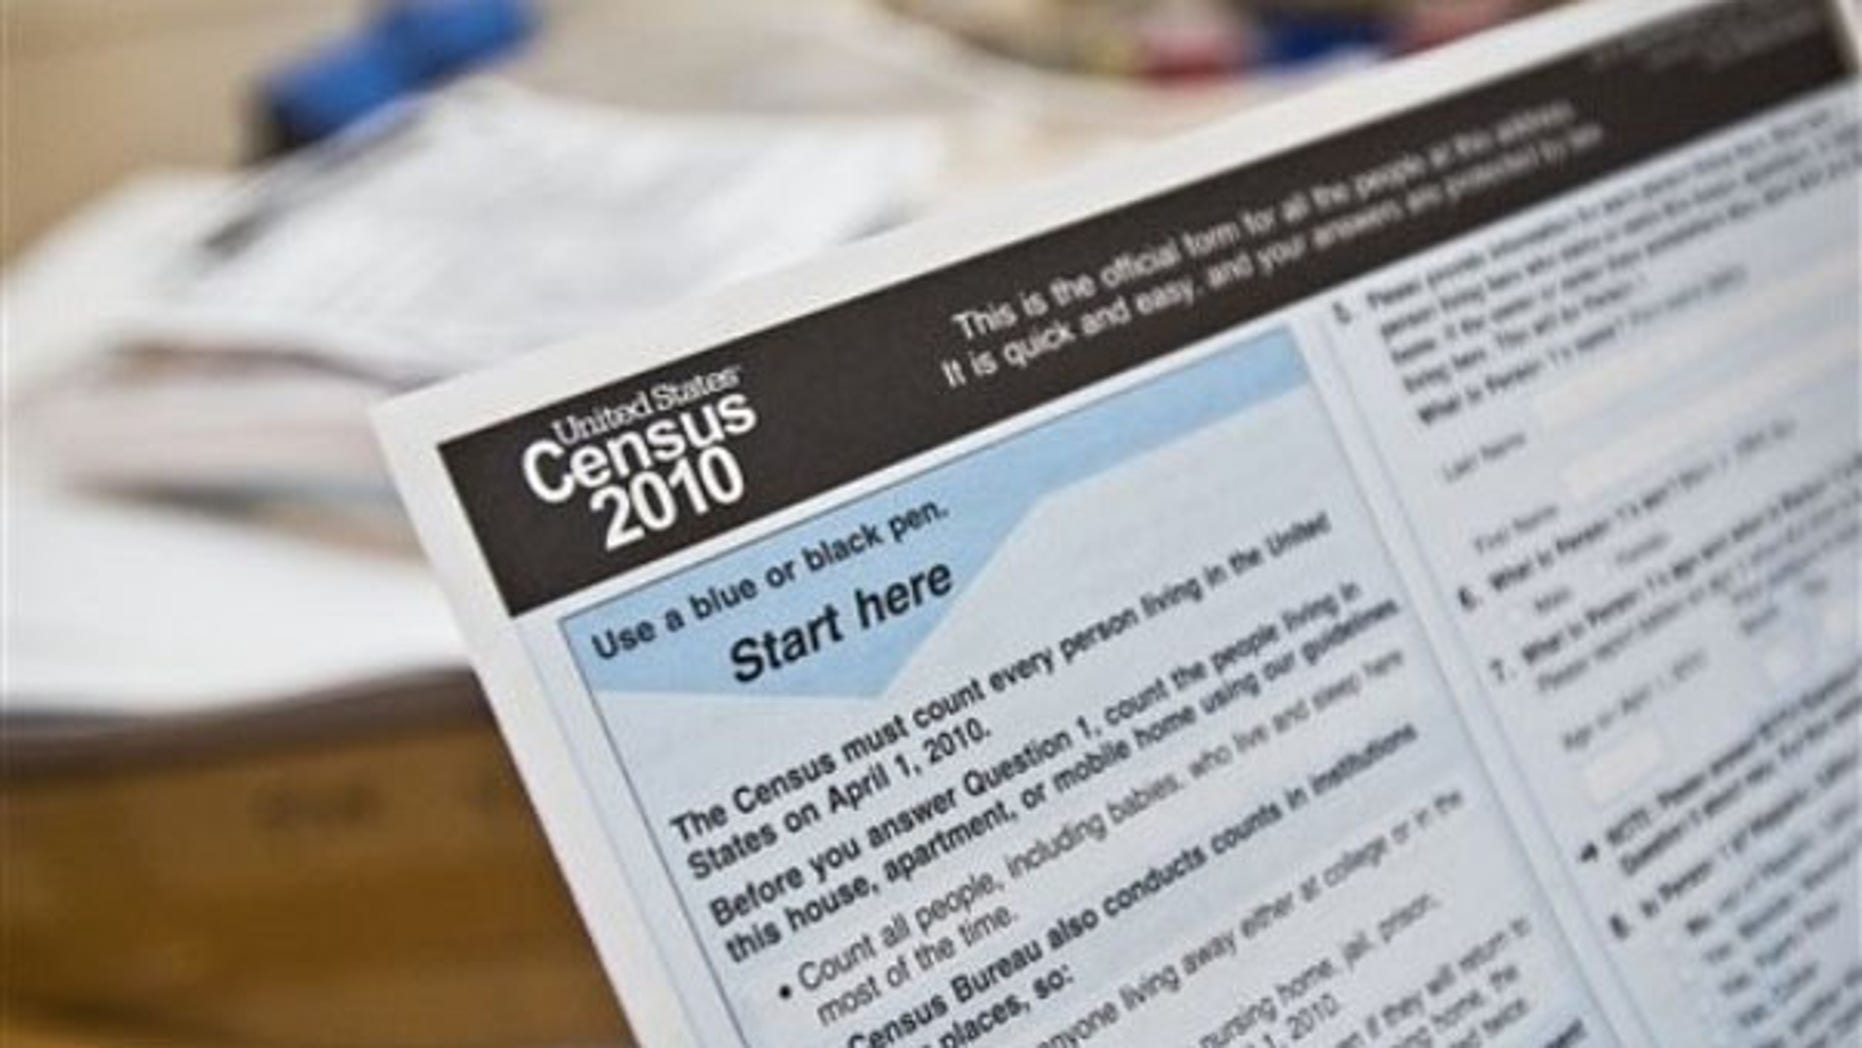 In this April 1 photo, a copy of a 2010 Census form is shown at a Census event at the Caldwell Housing Authority in Caldwell, Idaho. (AP Photo)